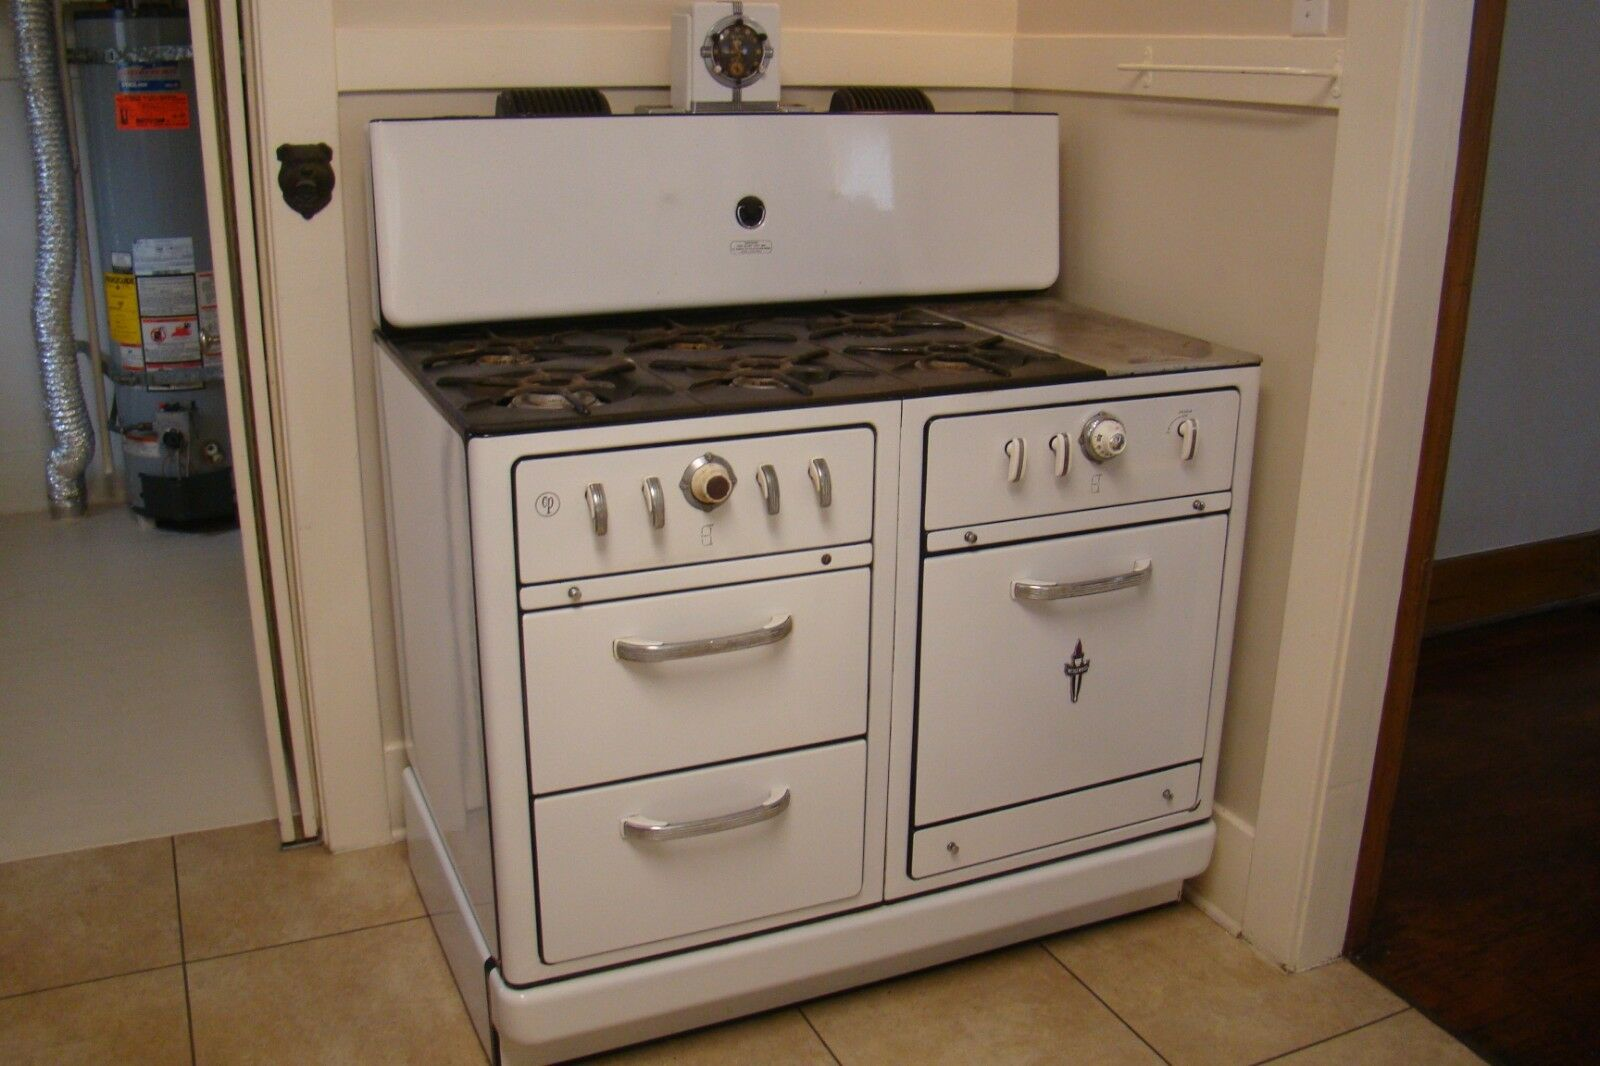 Photo ANTIQUE WEDGEWOOD STOVE RARE 6 BURNERS PLUS GRIDDLE IN REALLY GOOD CONDITION